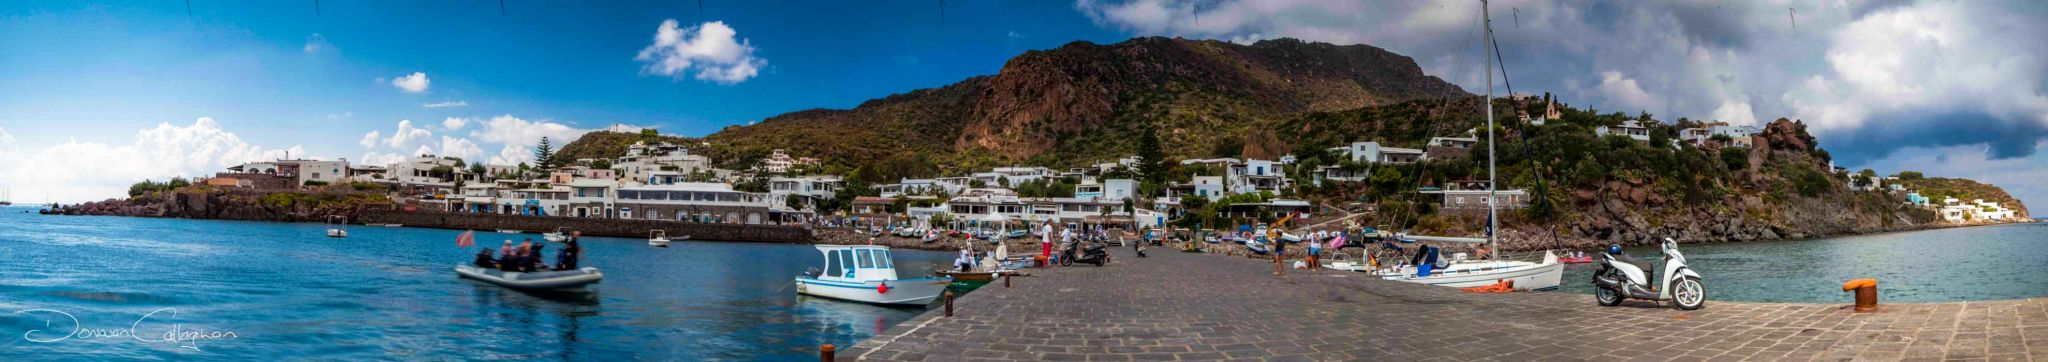 From the wharf on the Island of Panarea, Italy